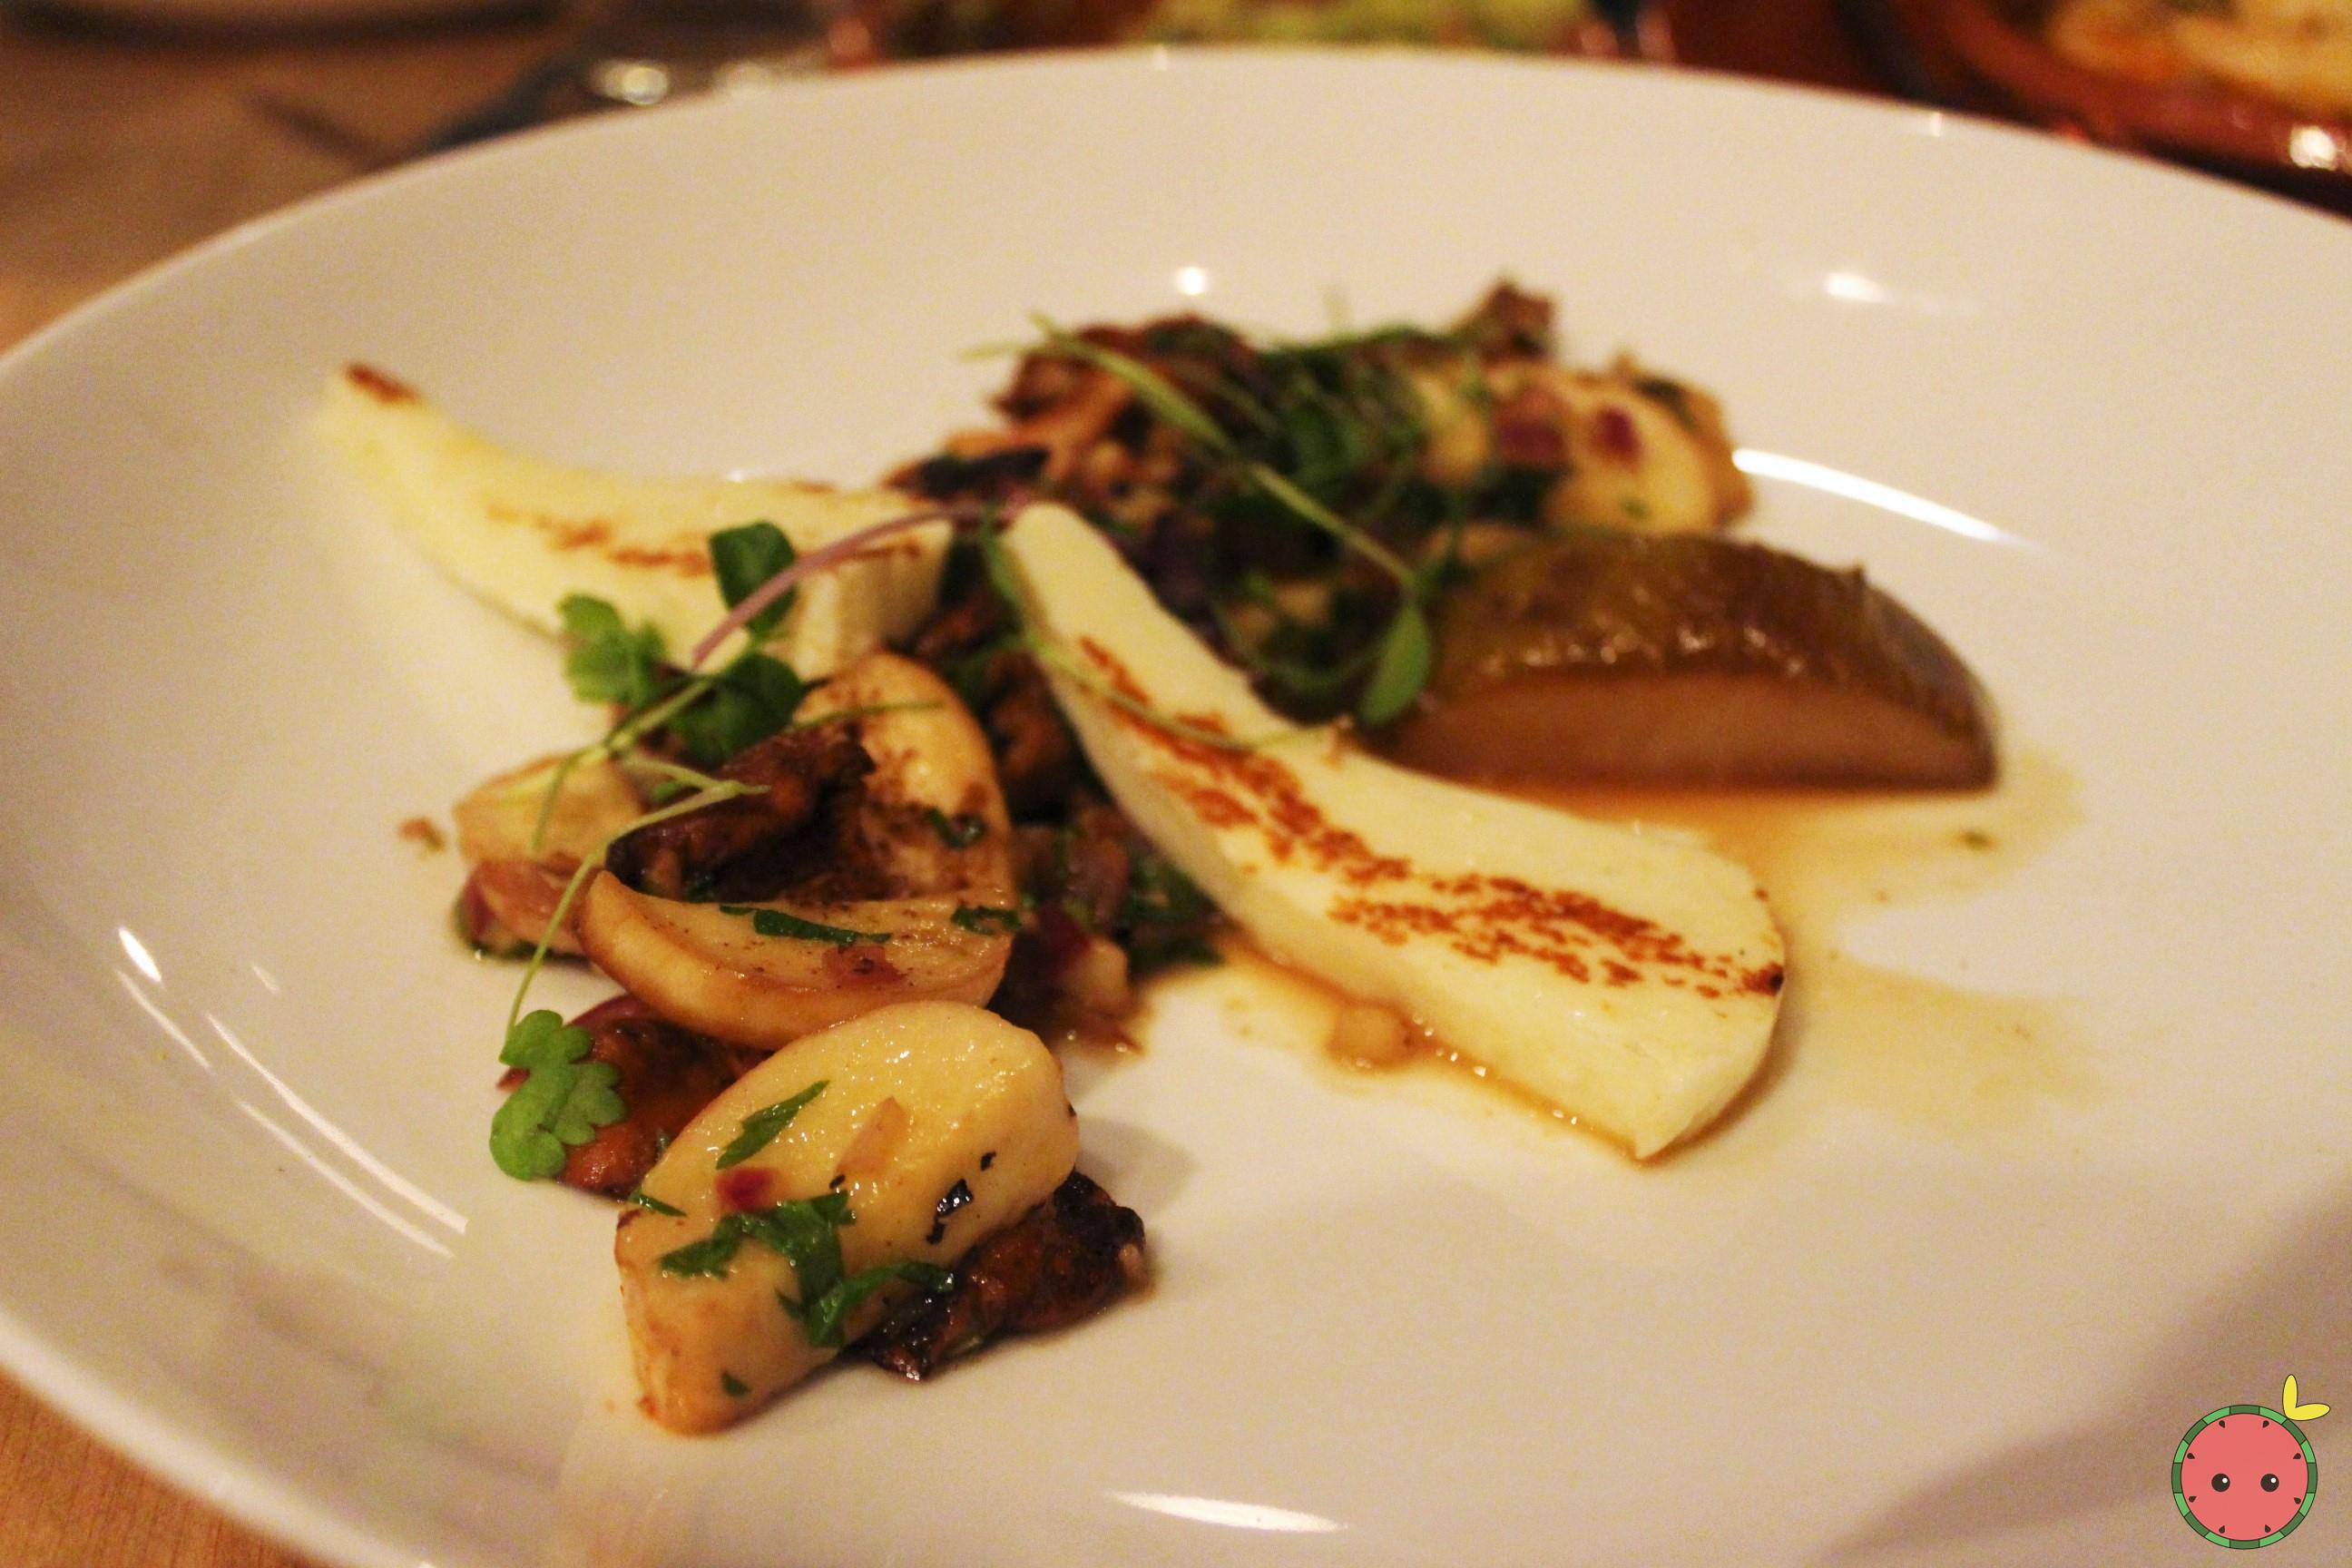 Wild mushrooms, epazote, roasted pear, chimichurri, grilled halloumi